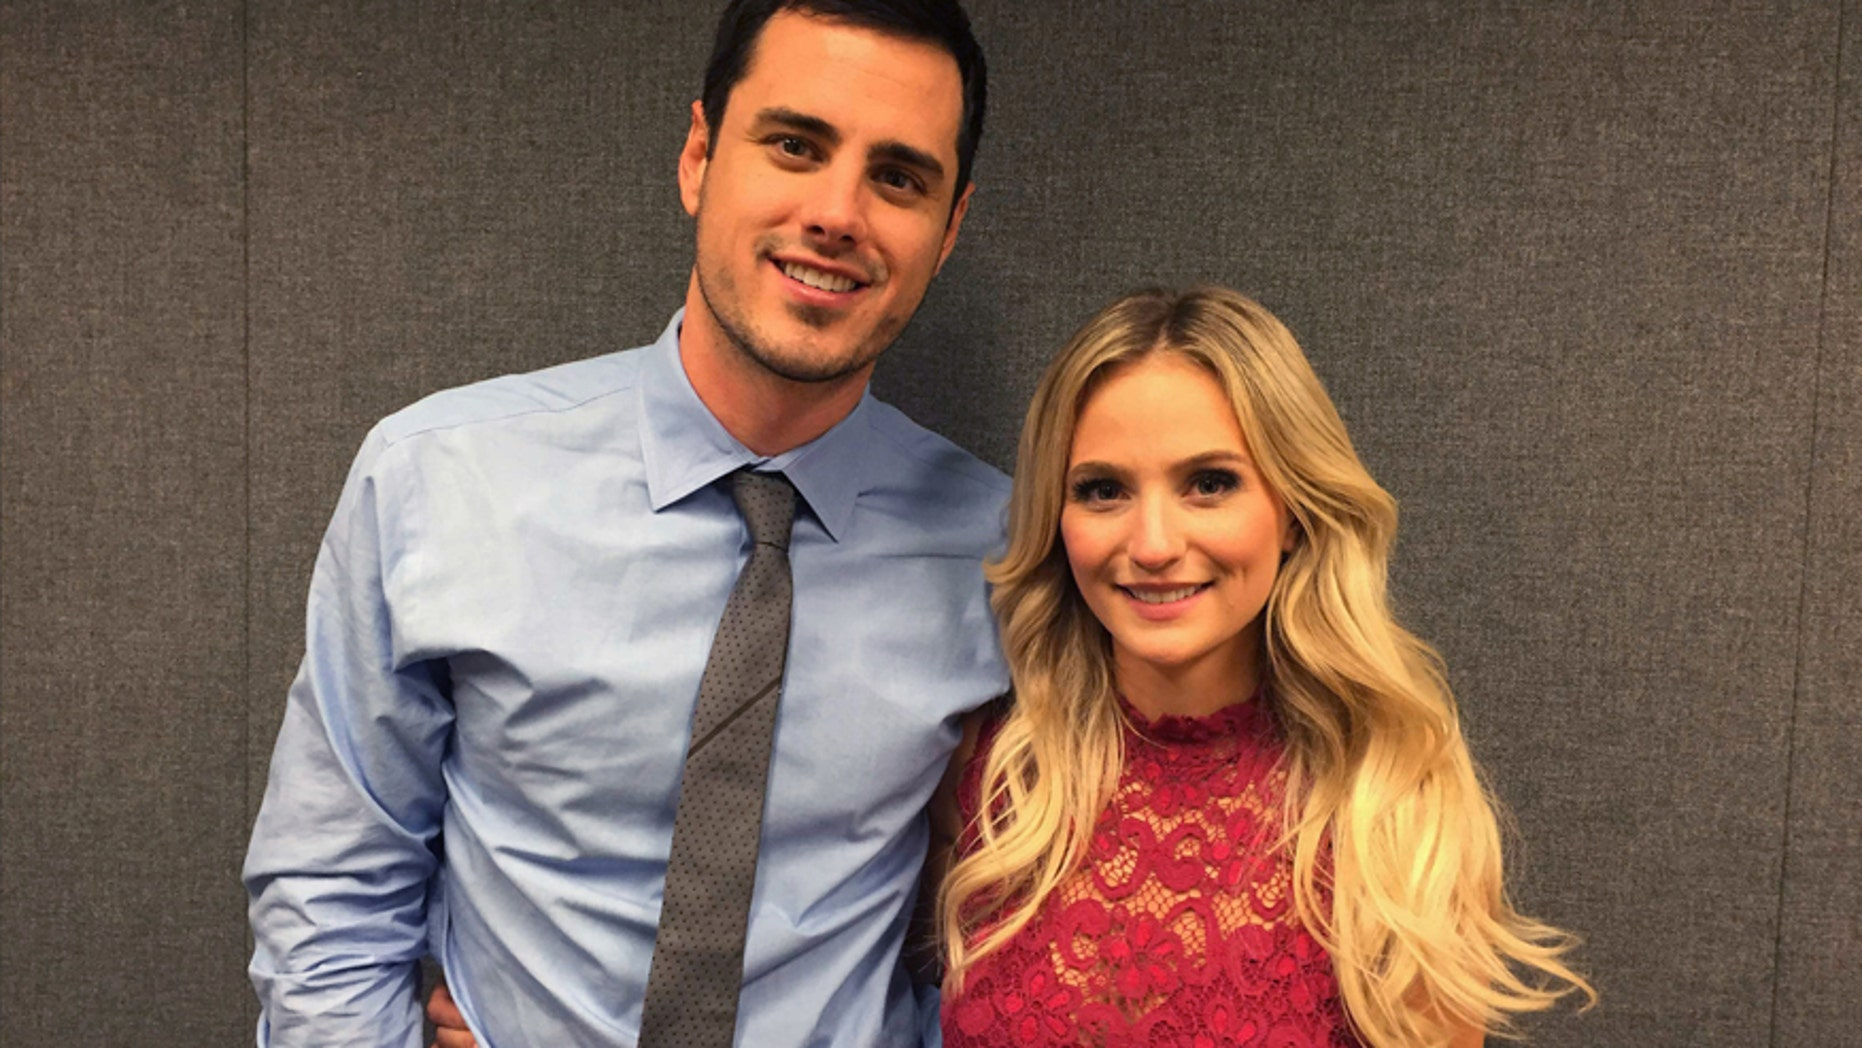 """Ben Higgins and Lauren Bushnell pose for a photo, Tuesday, March 15, 2016, in New York. Higgins proposed marriage to Bushnell in the season finale of ABC's """"The Bachelor."""" The show just wrapped its 20th season."""